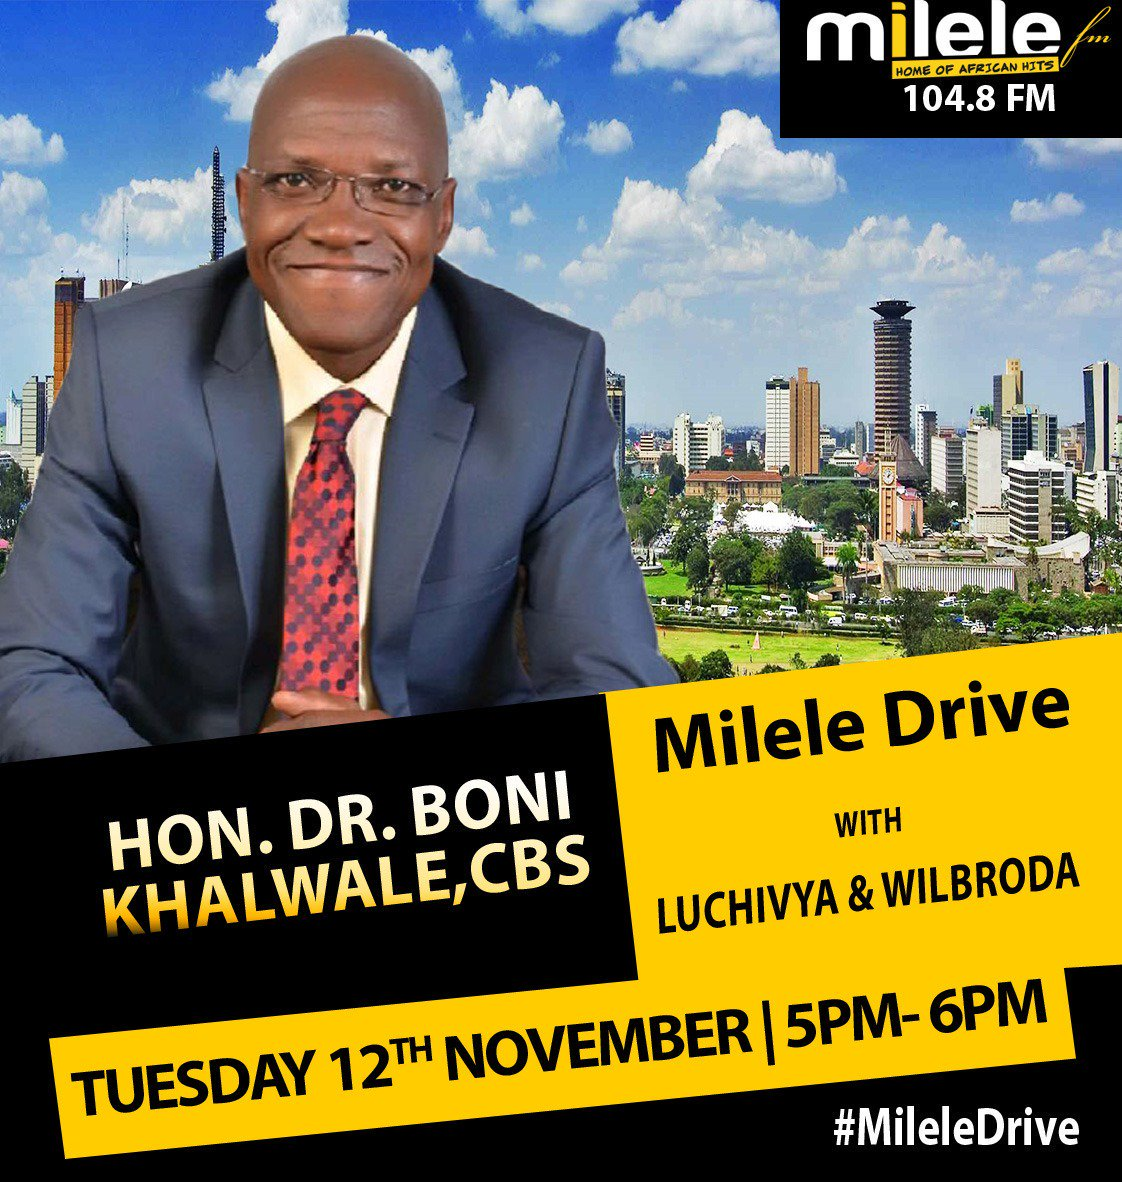 He will be LIVE on #MileleDrive at 5pm to talk about his experience in the hands of political thugs during the #KibraByElection @KBonimtetezi @Luchivya @wilbrodanyamin<br>http://pic.twitter.com/neHVH8IylV